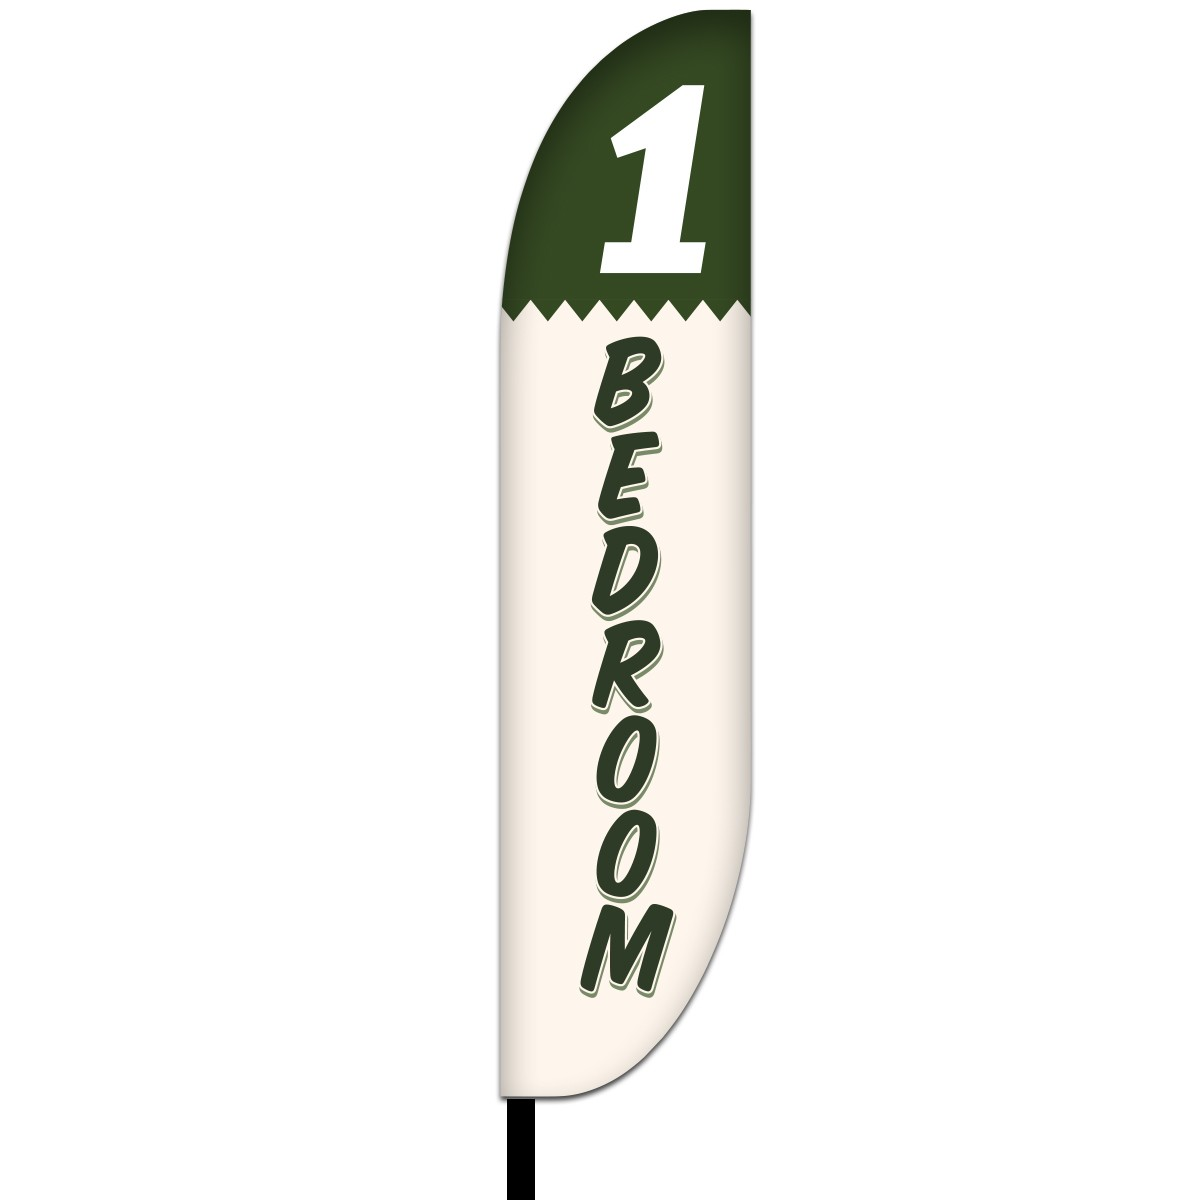 1 Bed Room Feather Flag Design